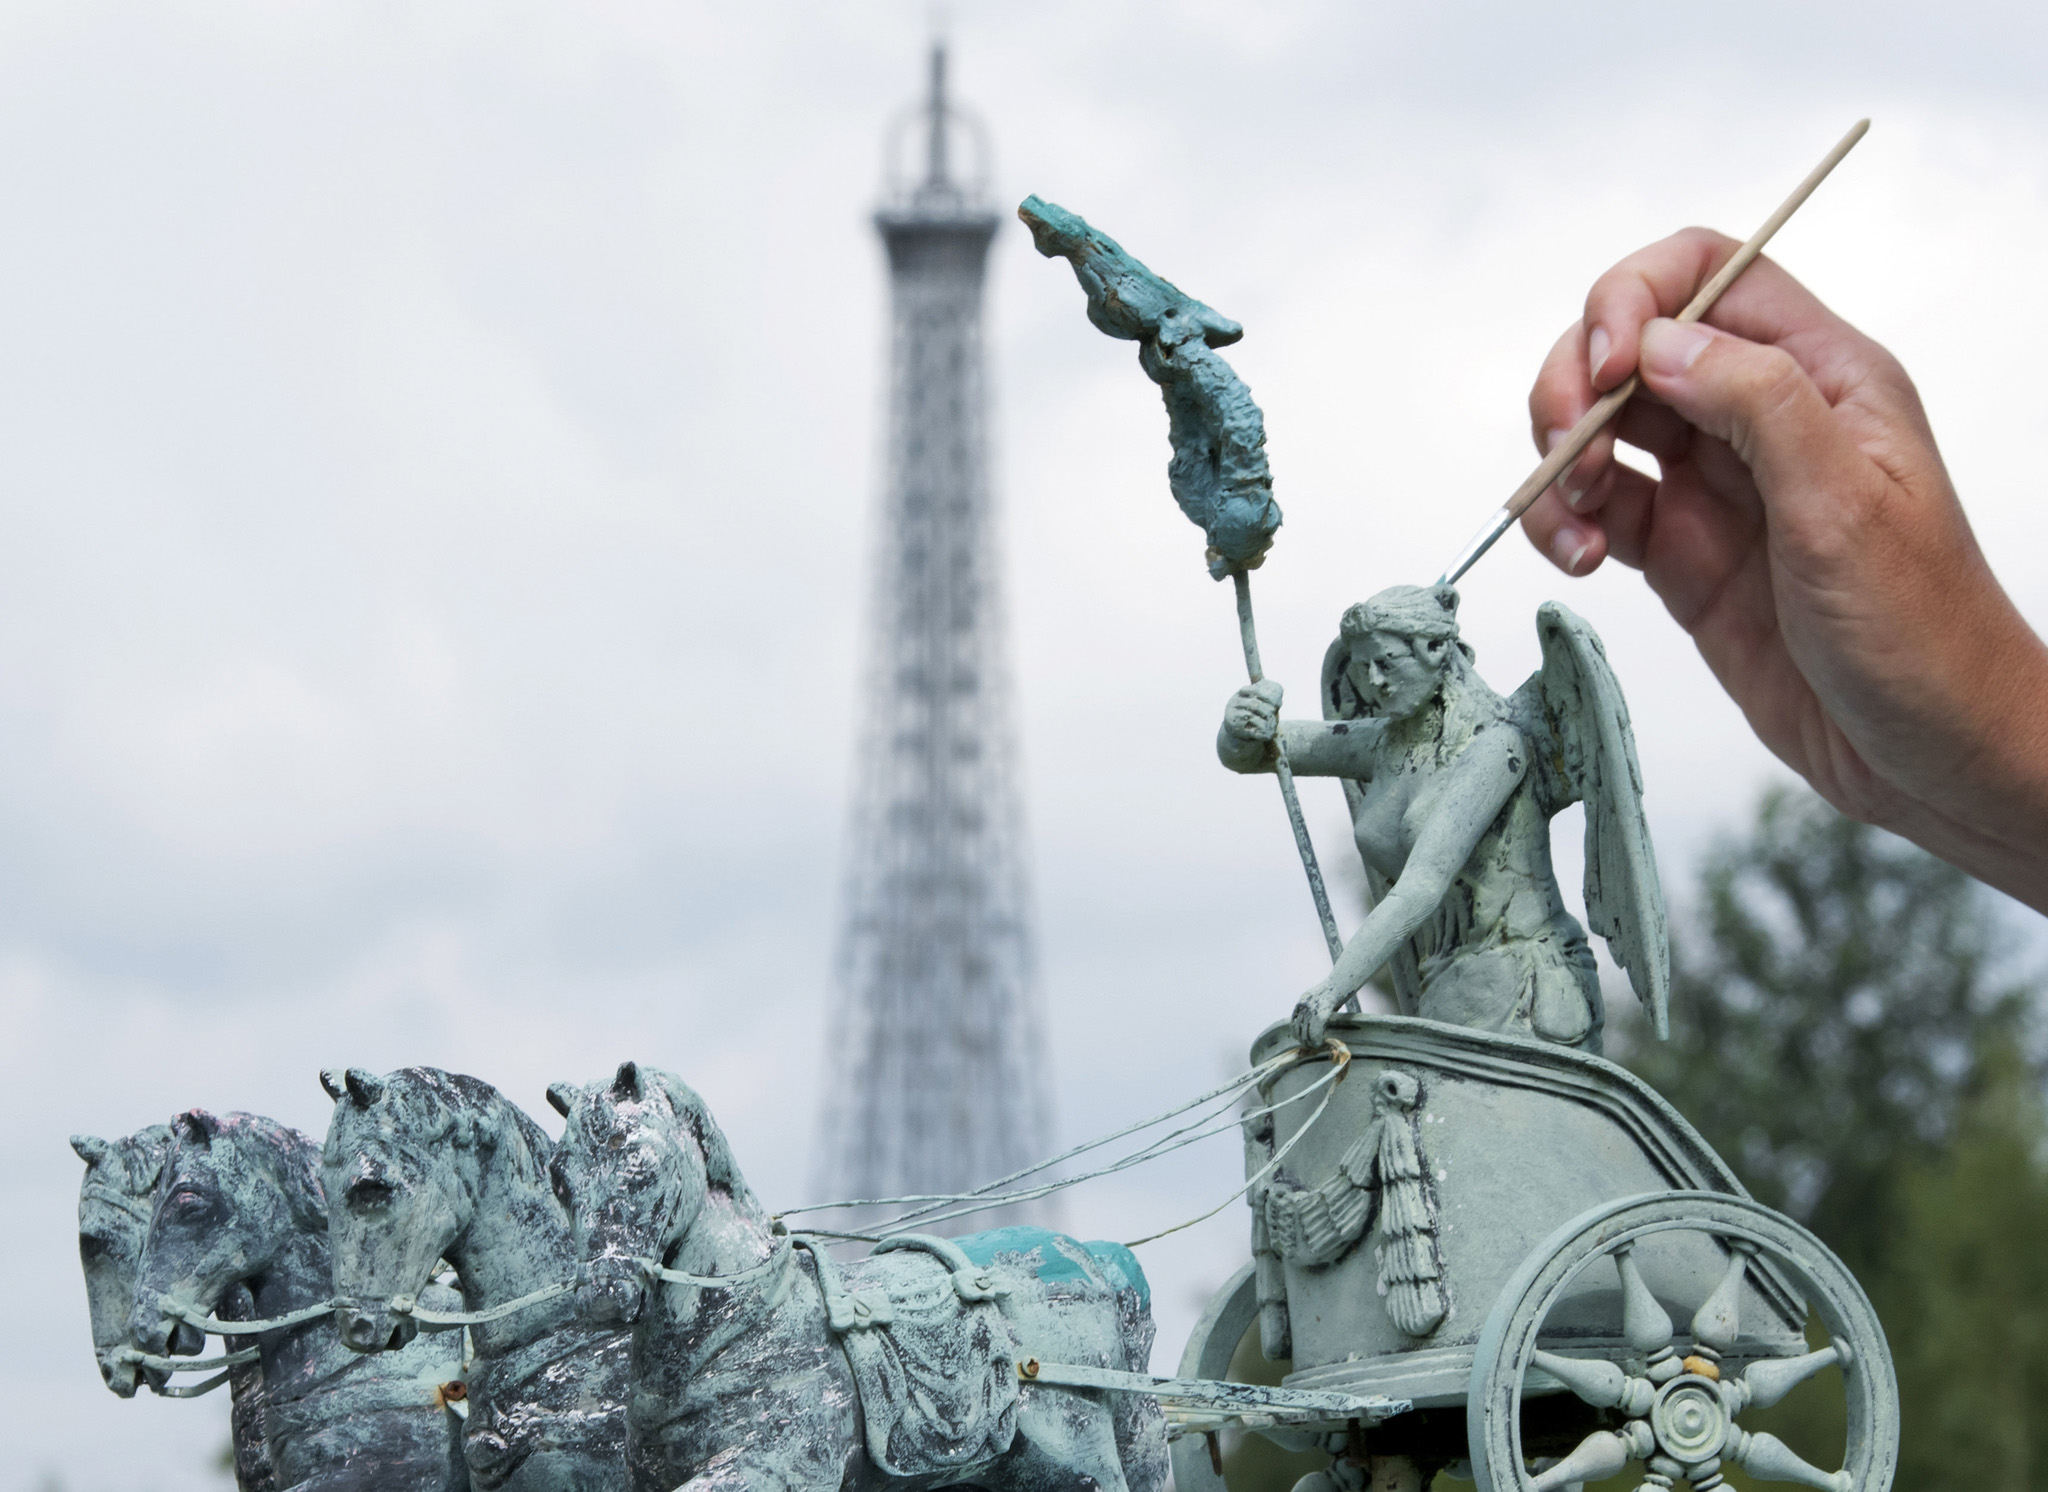 A worker paints a model of Berlin's Brandenburg Gate Quadriga in the landscape park Miniwelt (Miniworld) in Lichtenstein, eastern Germany